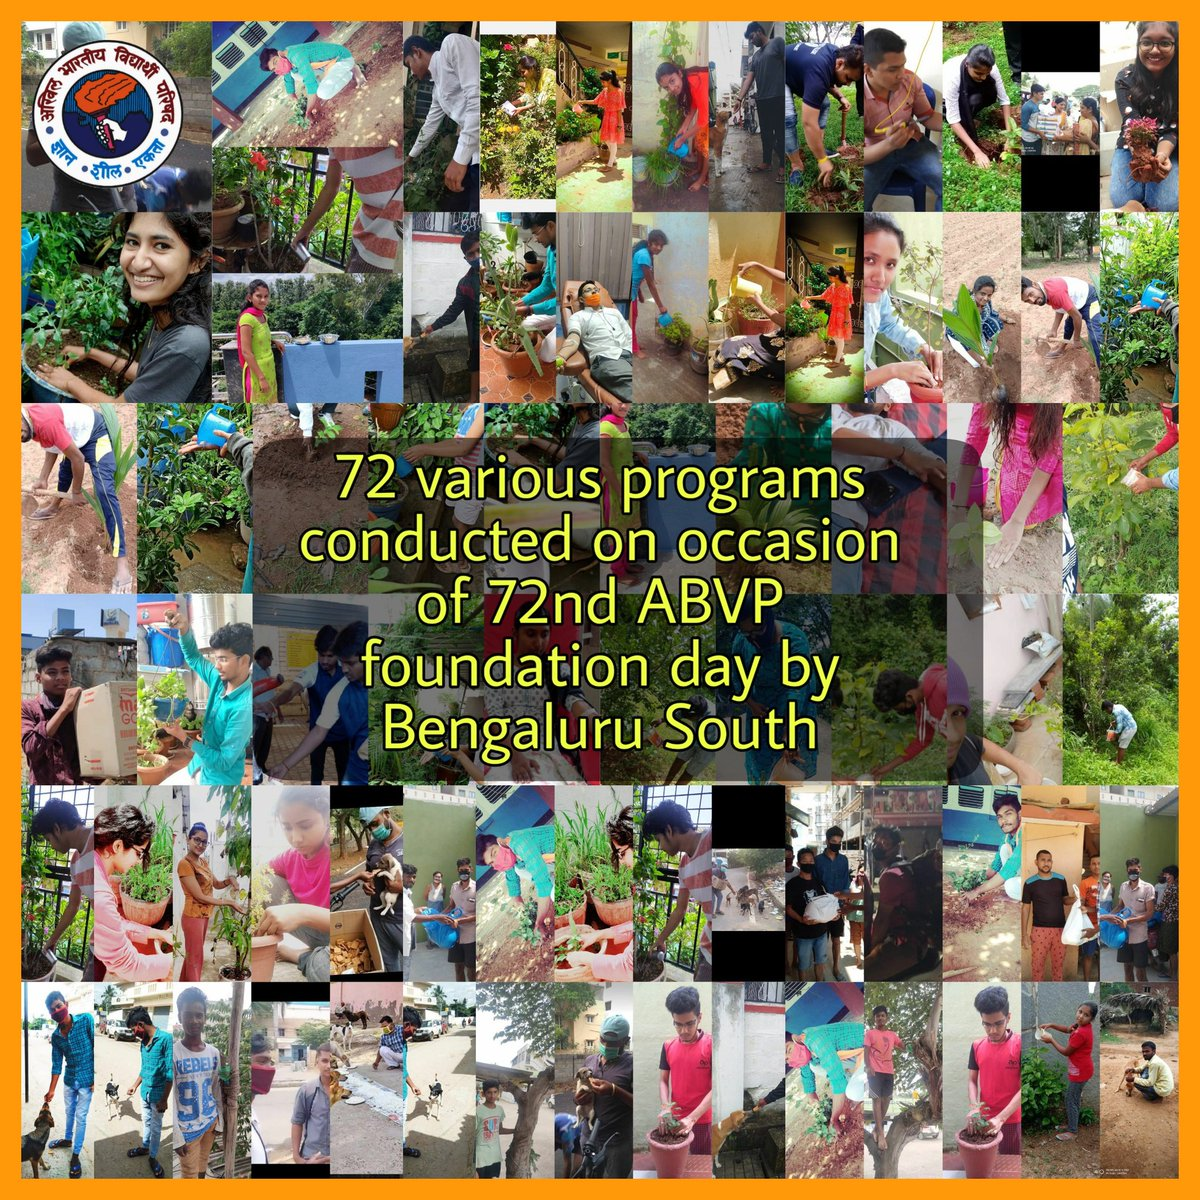 ABVP Bengaluru South conducted 72 various programs by Karyakartas at their house by planting saplings, cleaning the surroundings, feeding animals, etc. on the occasion of 72nd ABVP foundation day. #NationalStudentsDay #ABVPForSociety https://t.co/gLLNP4m8lr